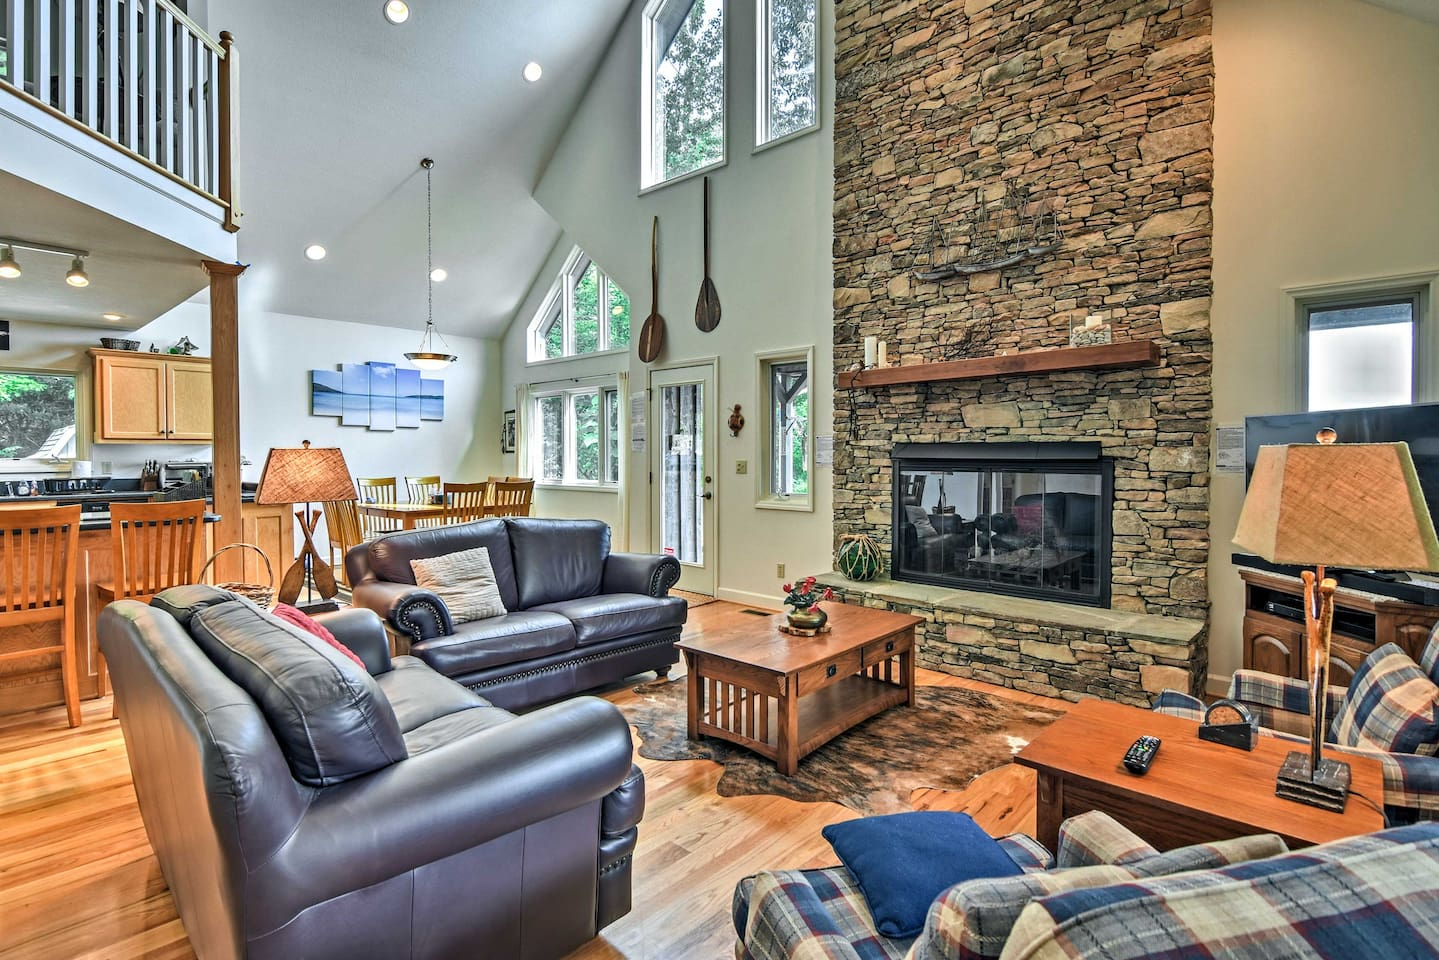 Make the most of your Hays getaway at this 3-bedroom, 3-bath vacation rental!